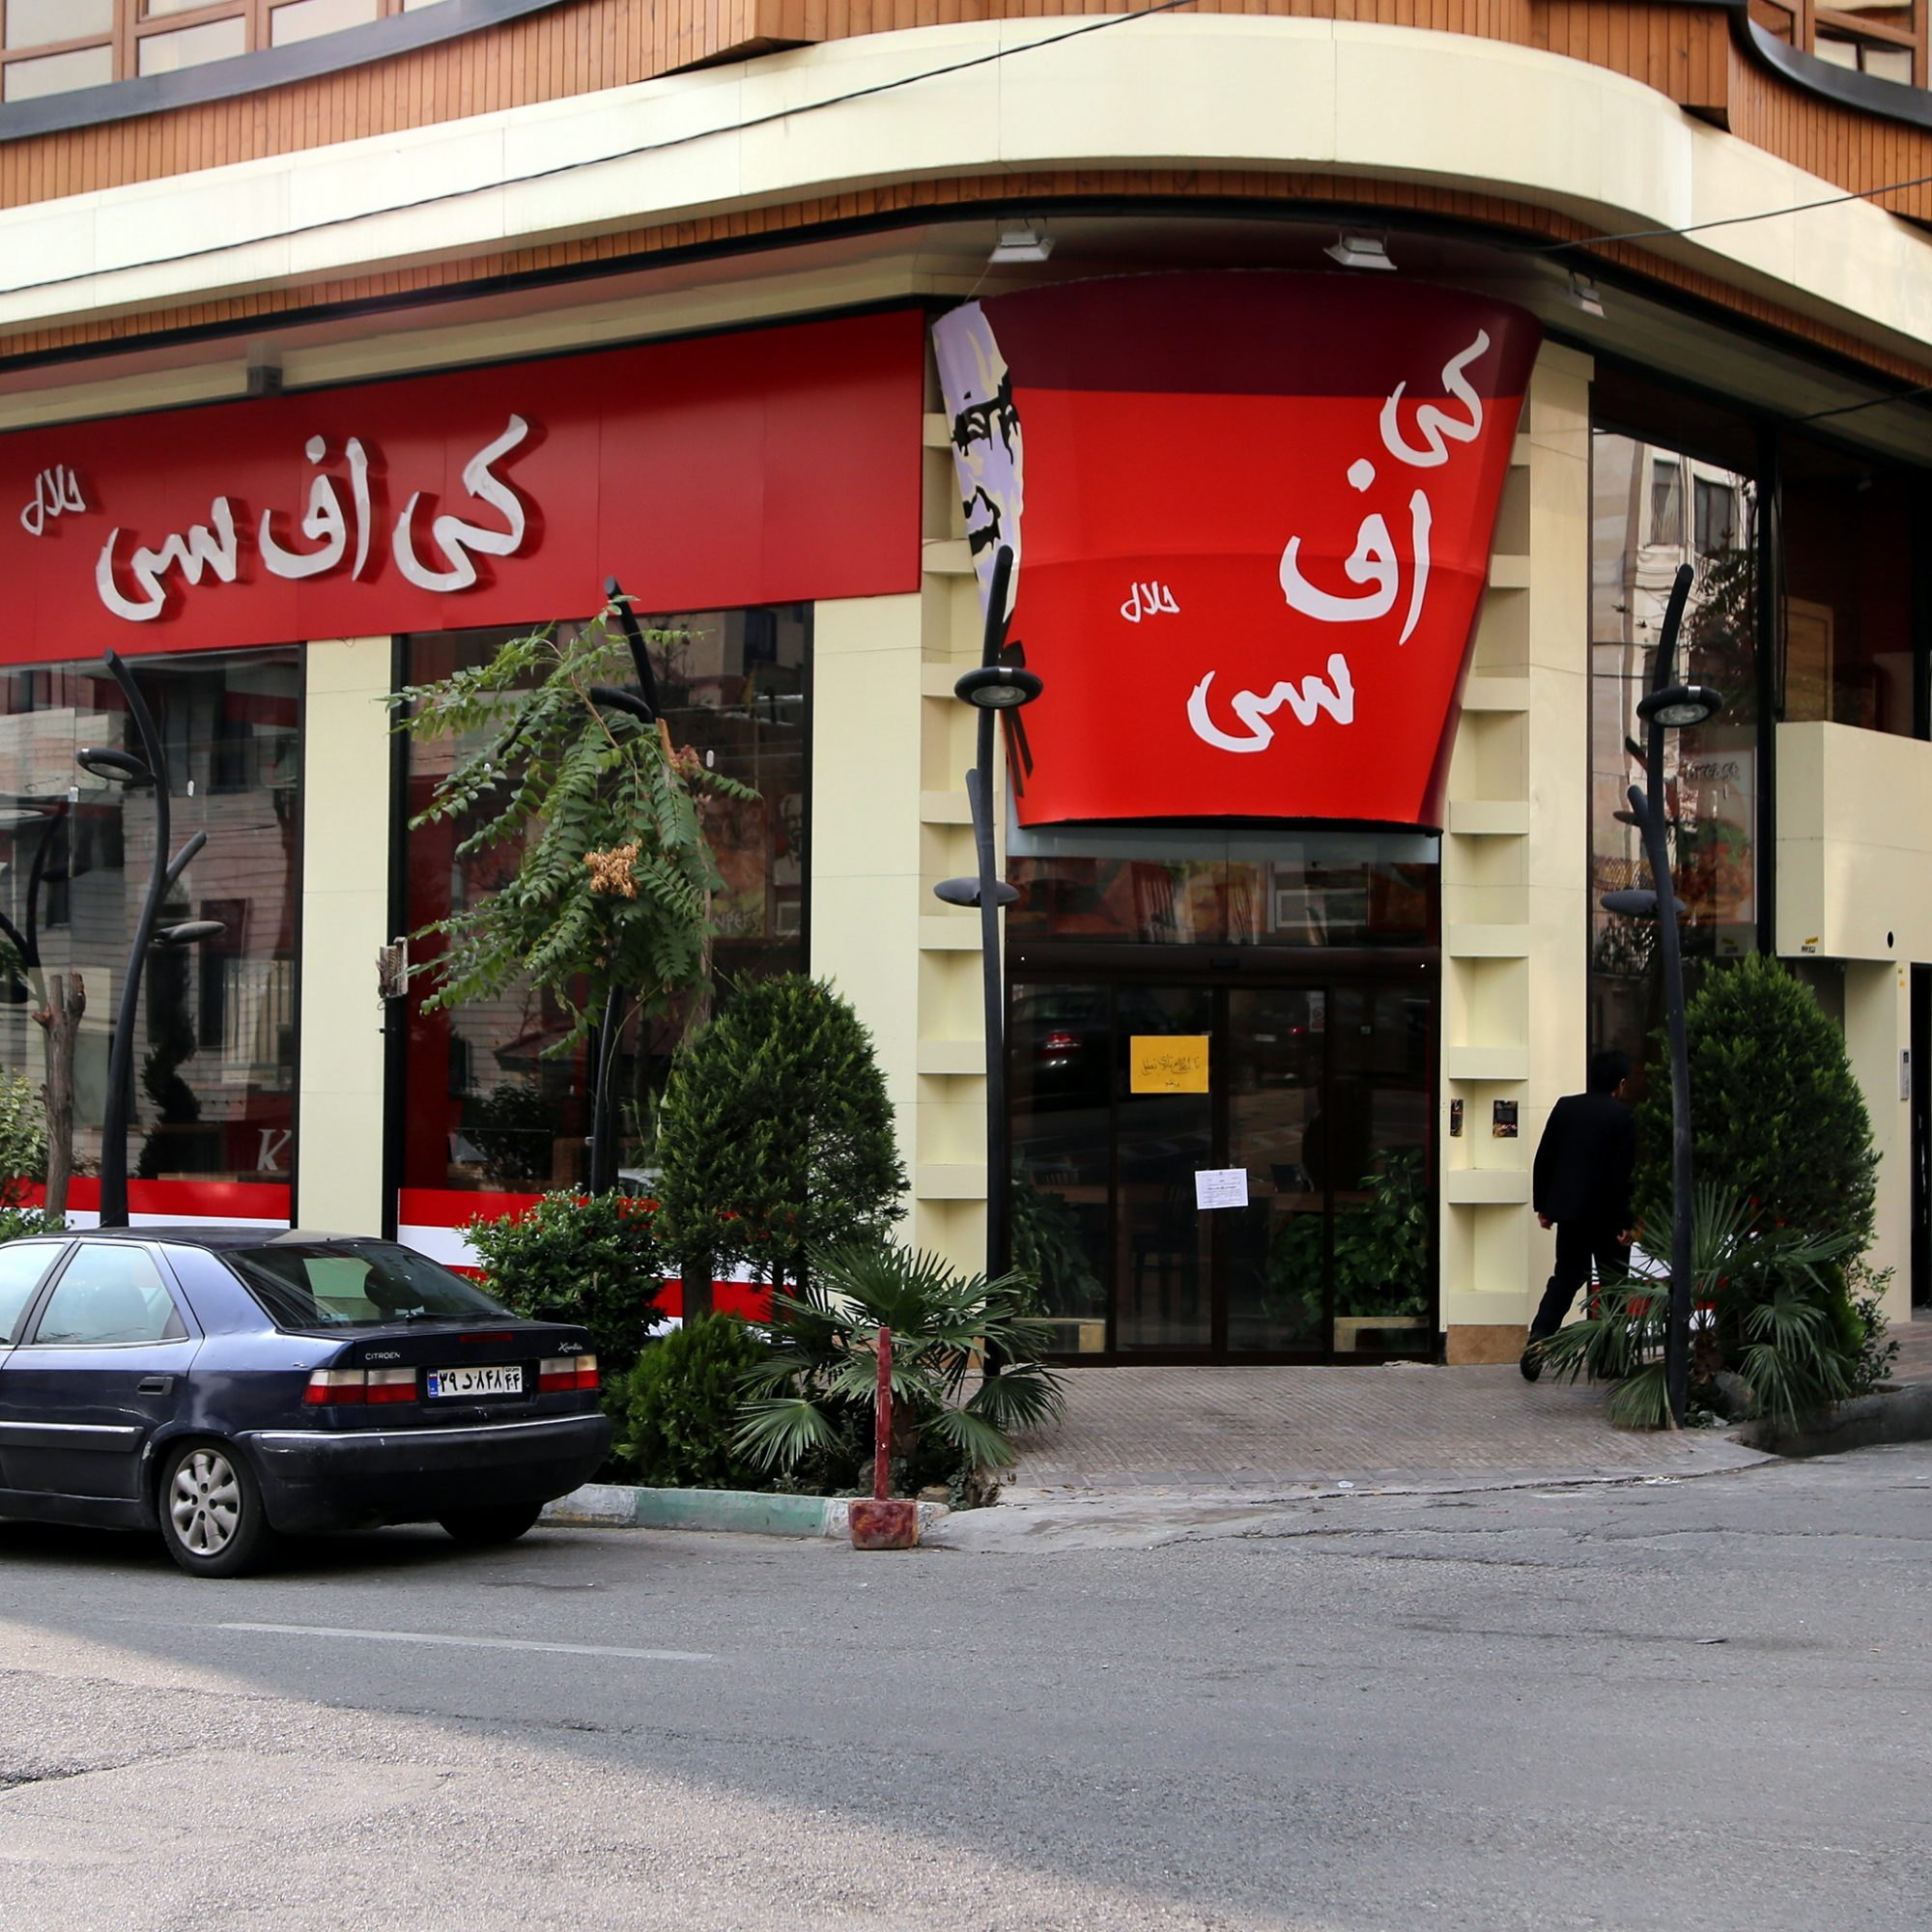 This Fake KFC Was Too Much Like to the Real Thing to Stay Open in Iran